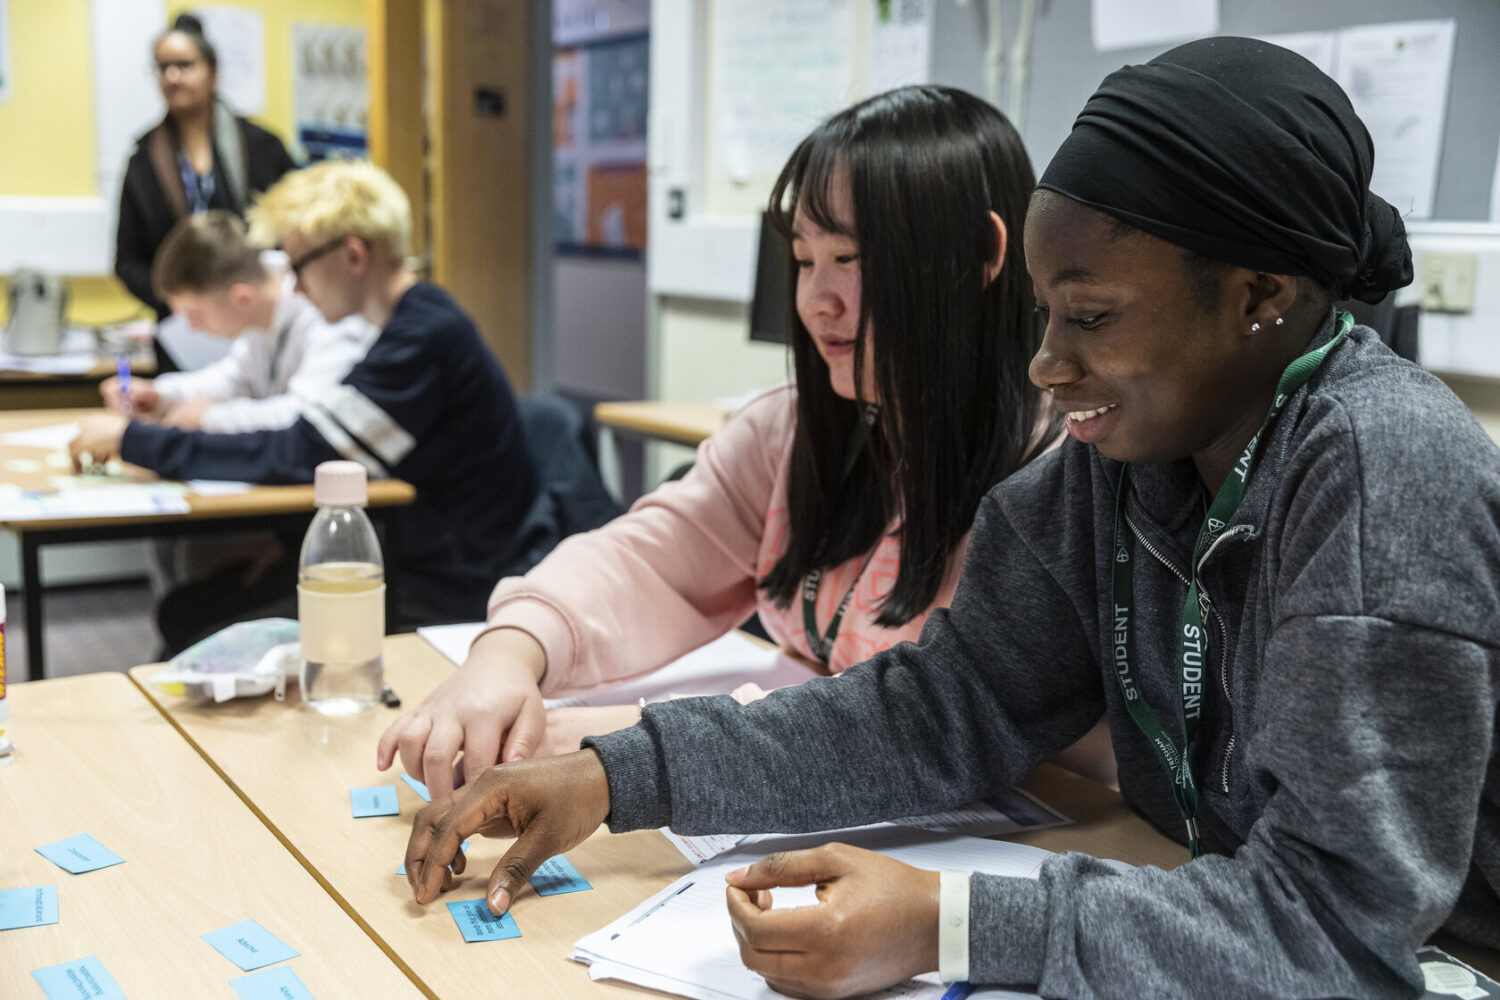 English for Speakers of Other Languages students Bedford College